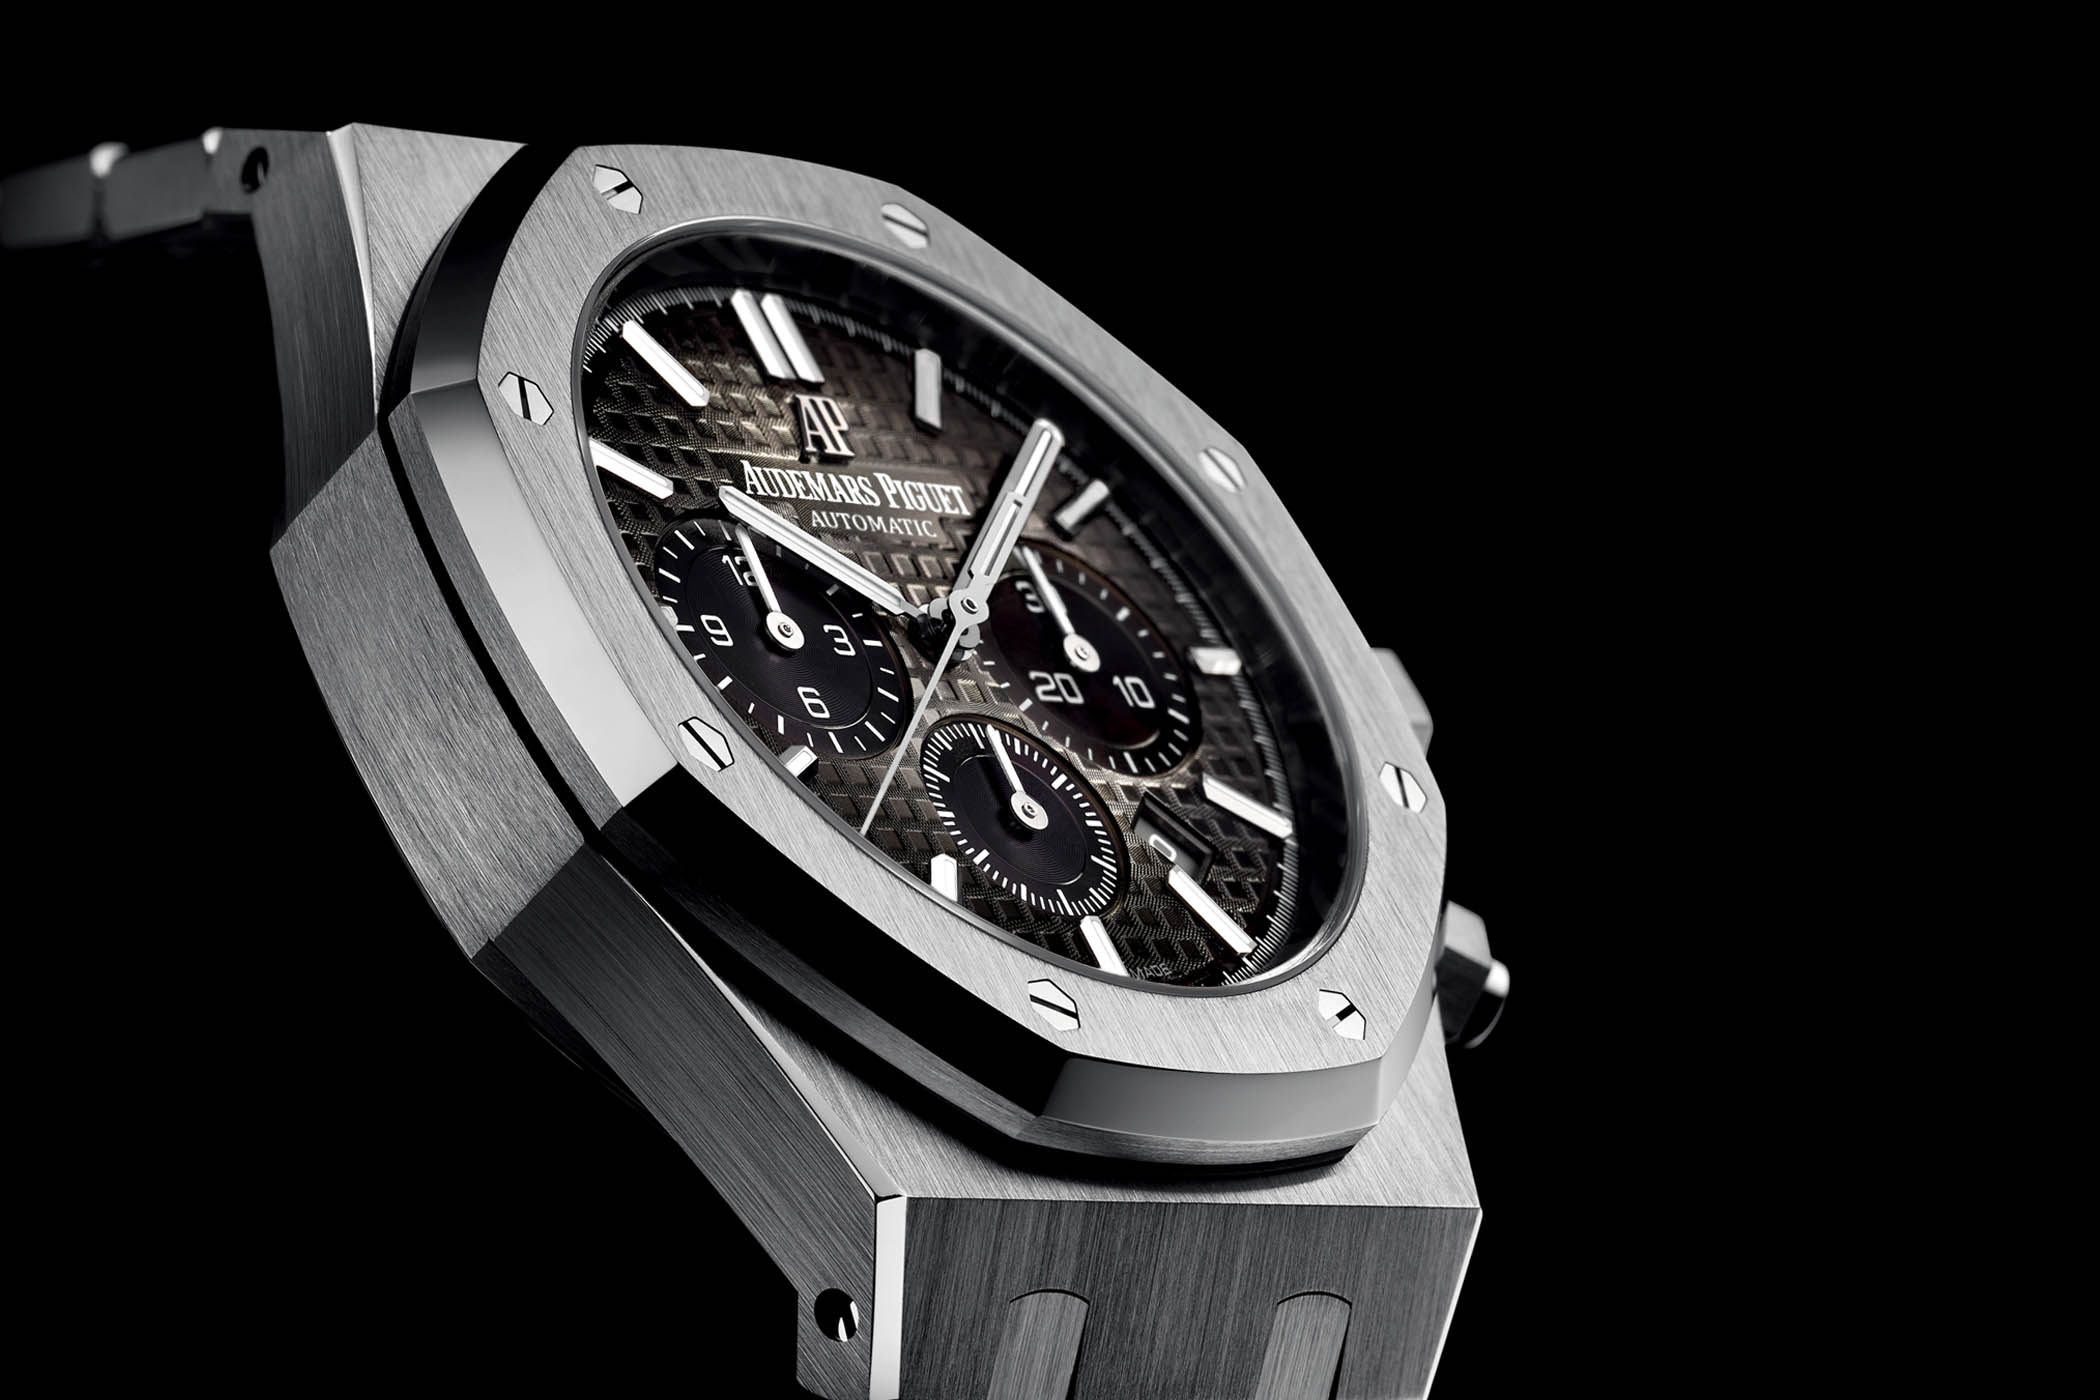 Audemars Piguet Royal Oak Chronograph Smoked Dial Platinum 26332PT - SIHH 2018